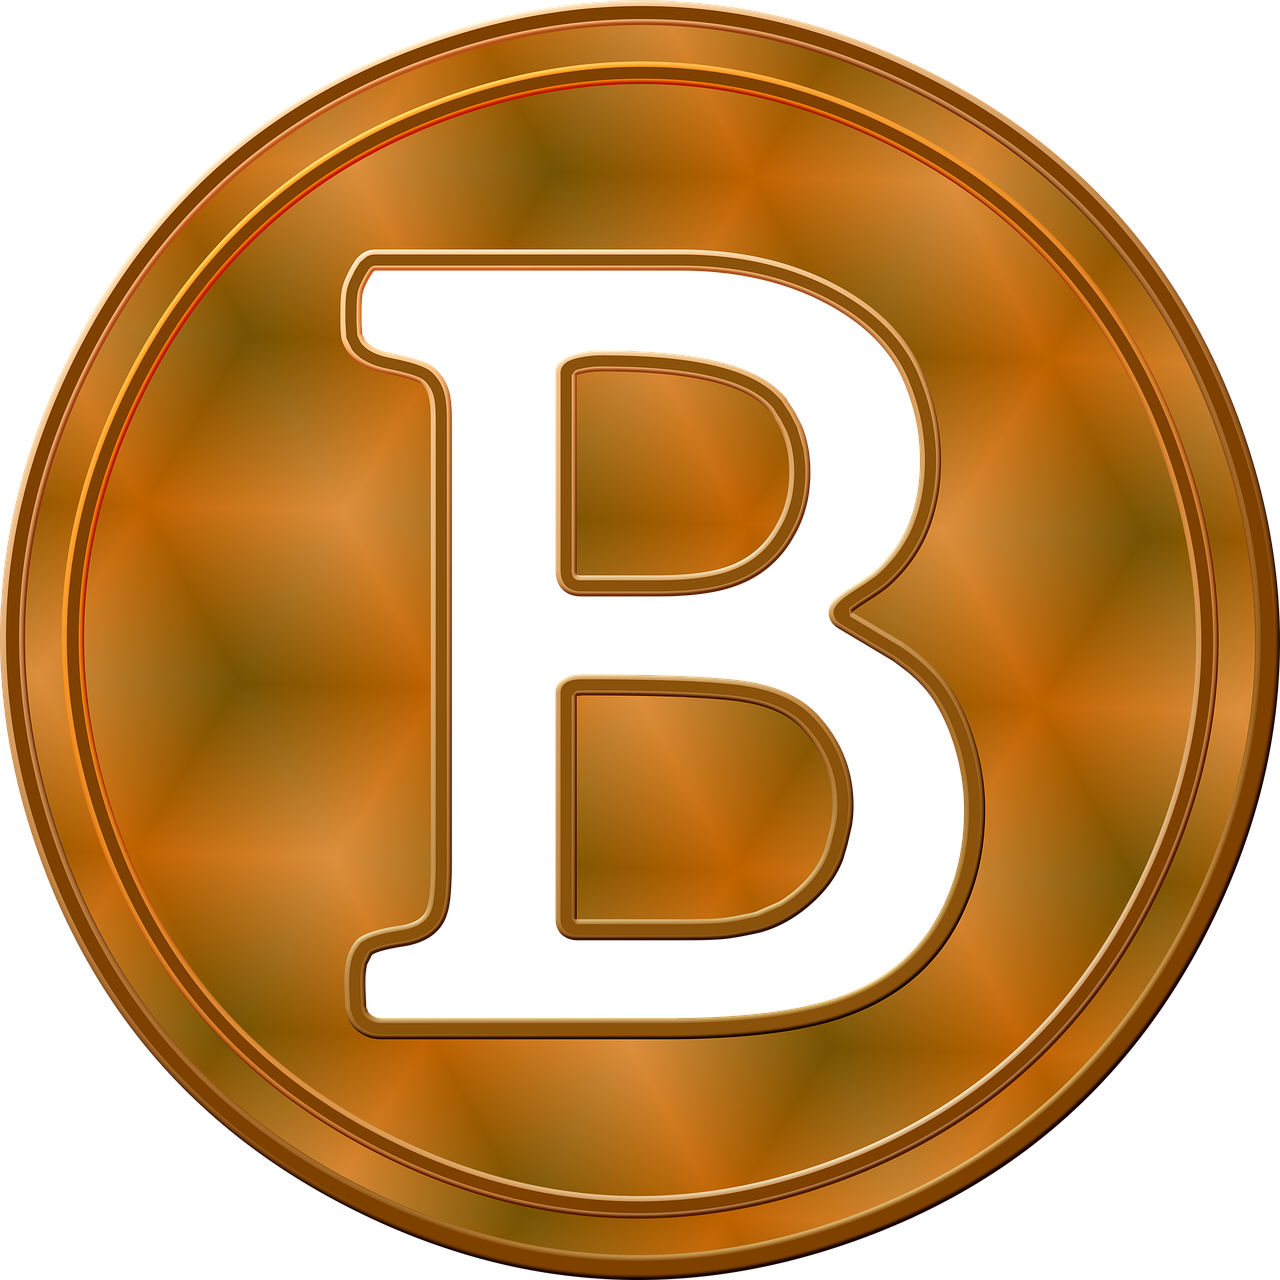 clip art download Coin money virtual cryptocurrency. Bitcoin transparent currency